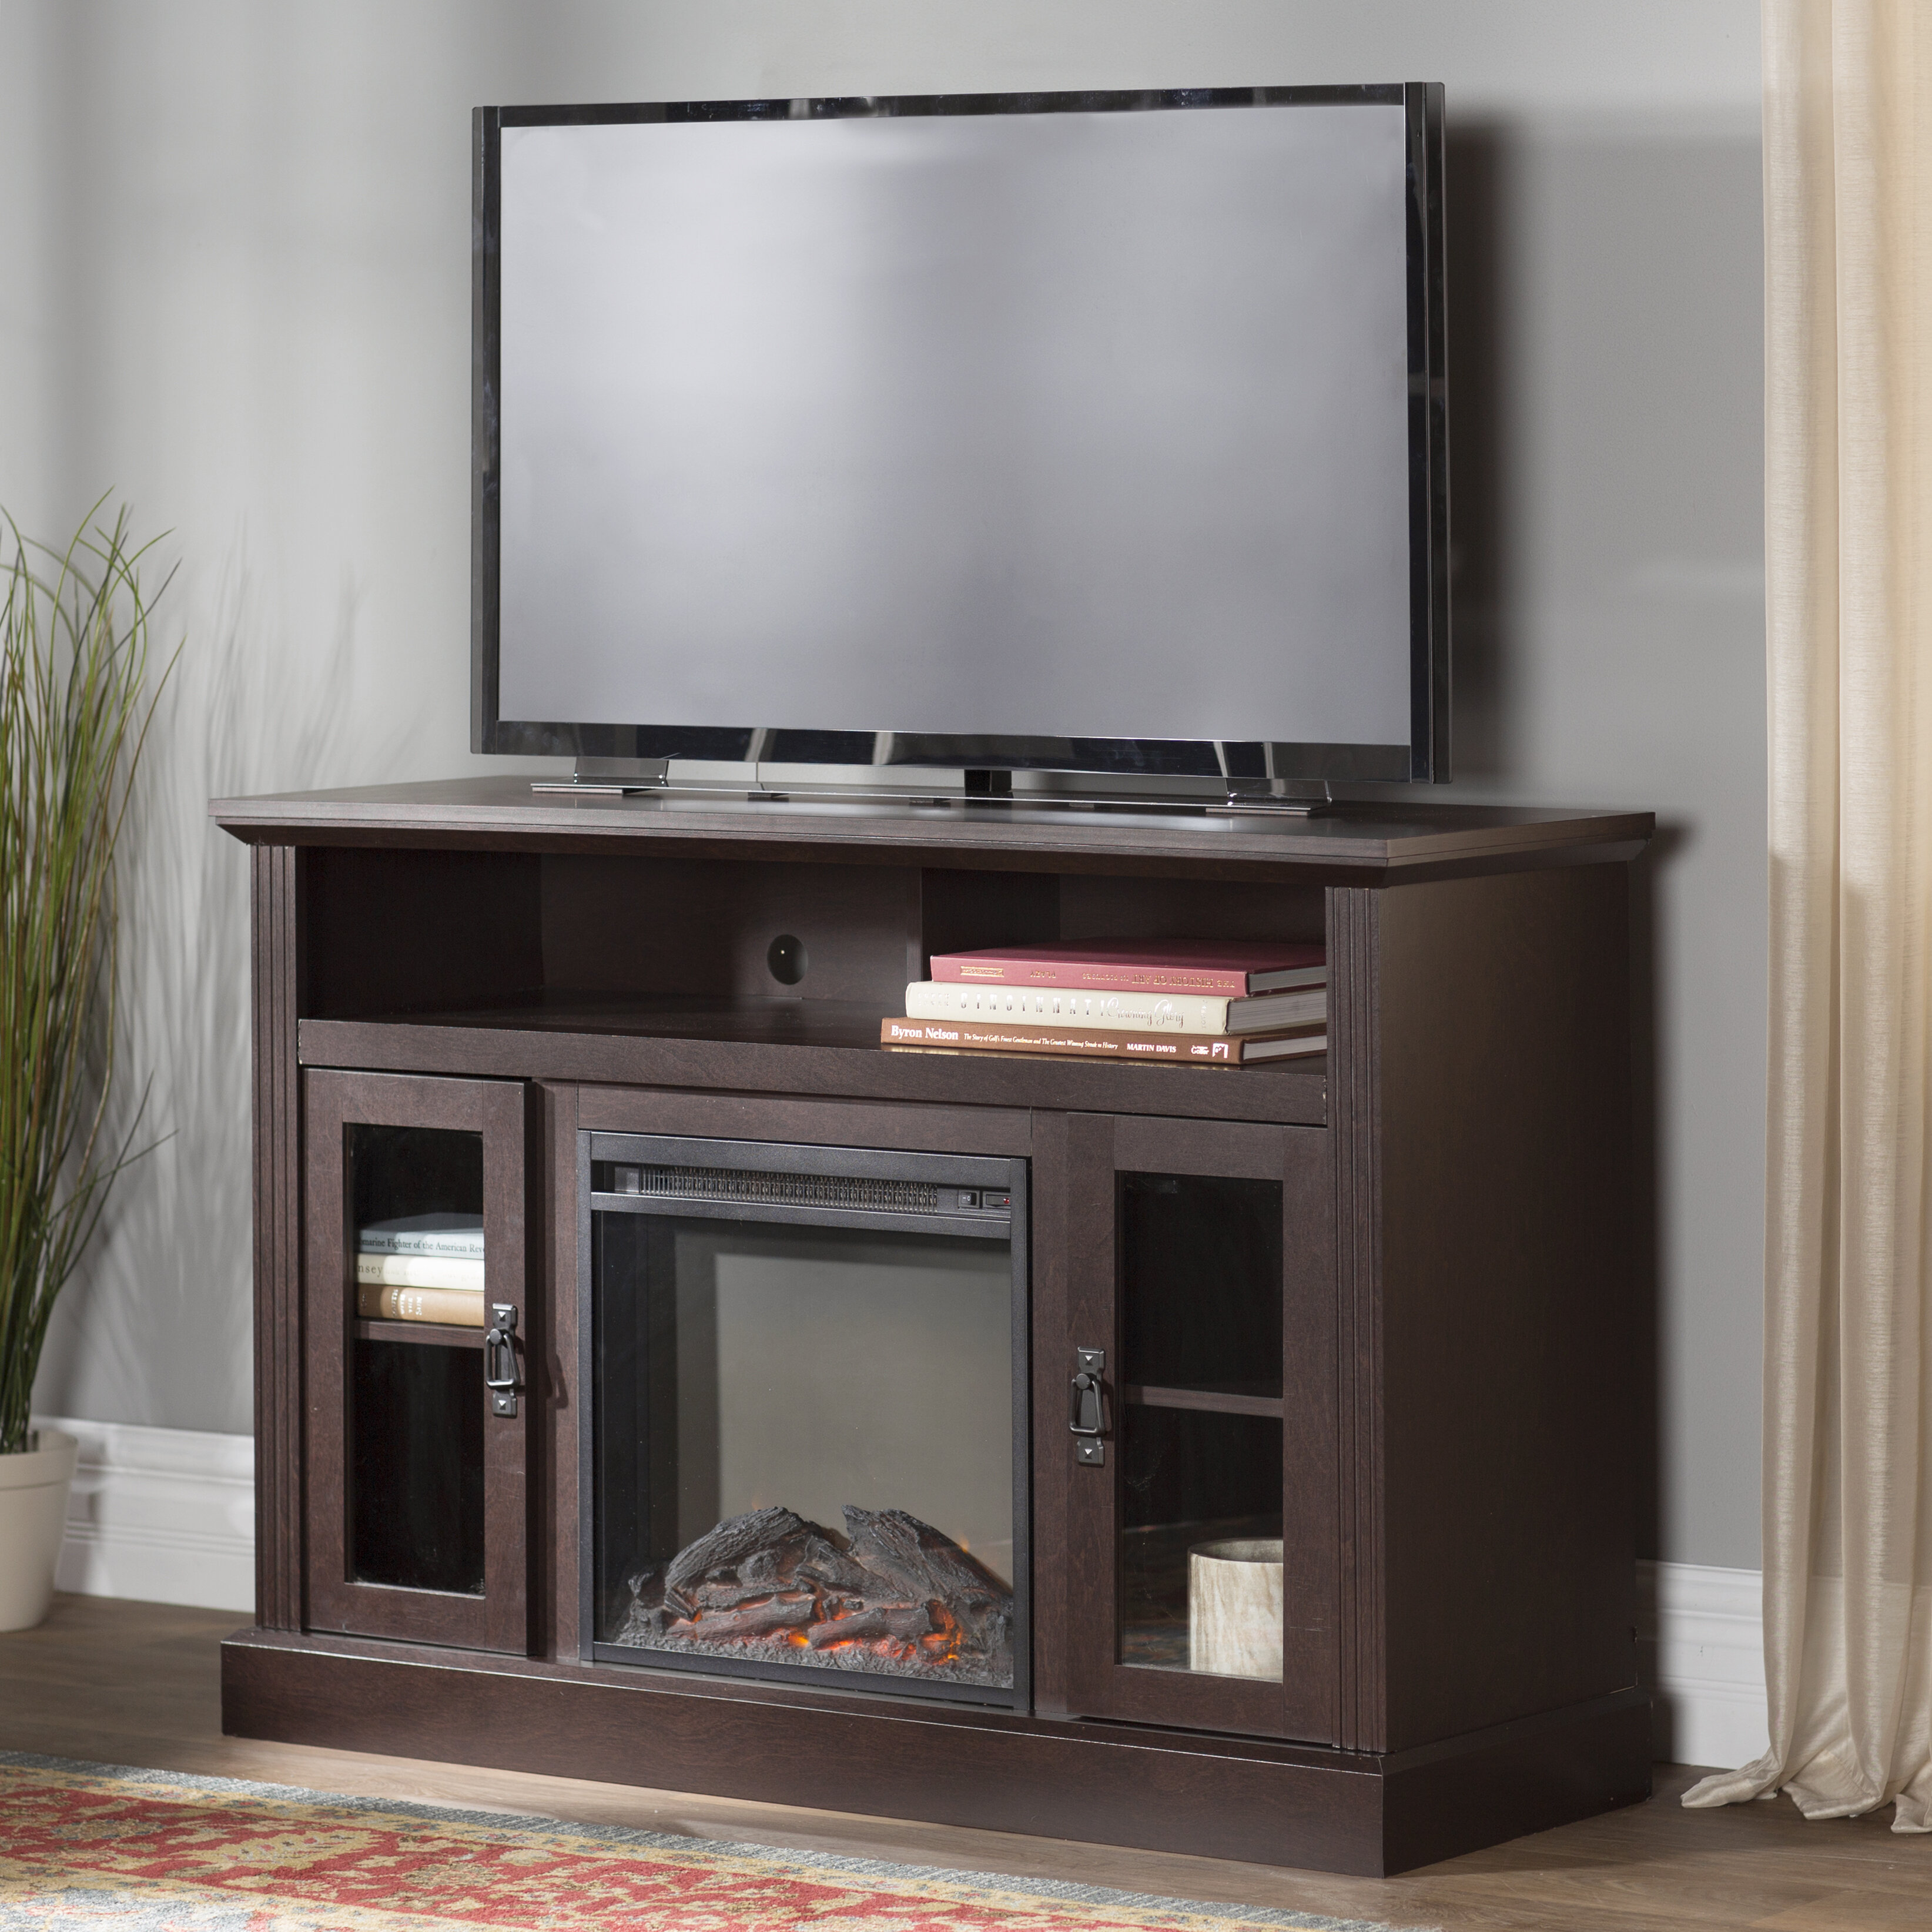 Darby Home Co Rosier 47 Quot Tv Stand With Electric Fireplace